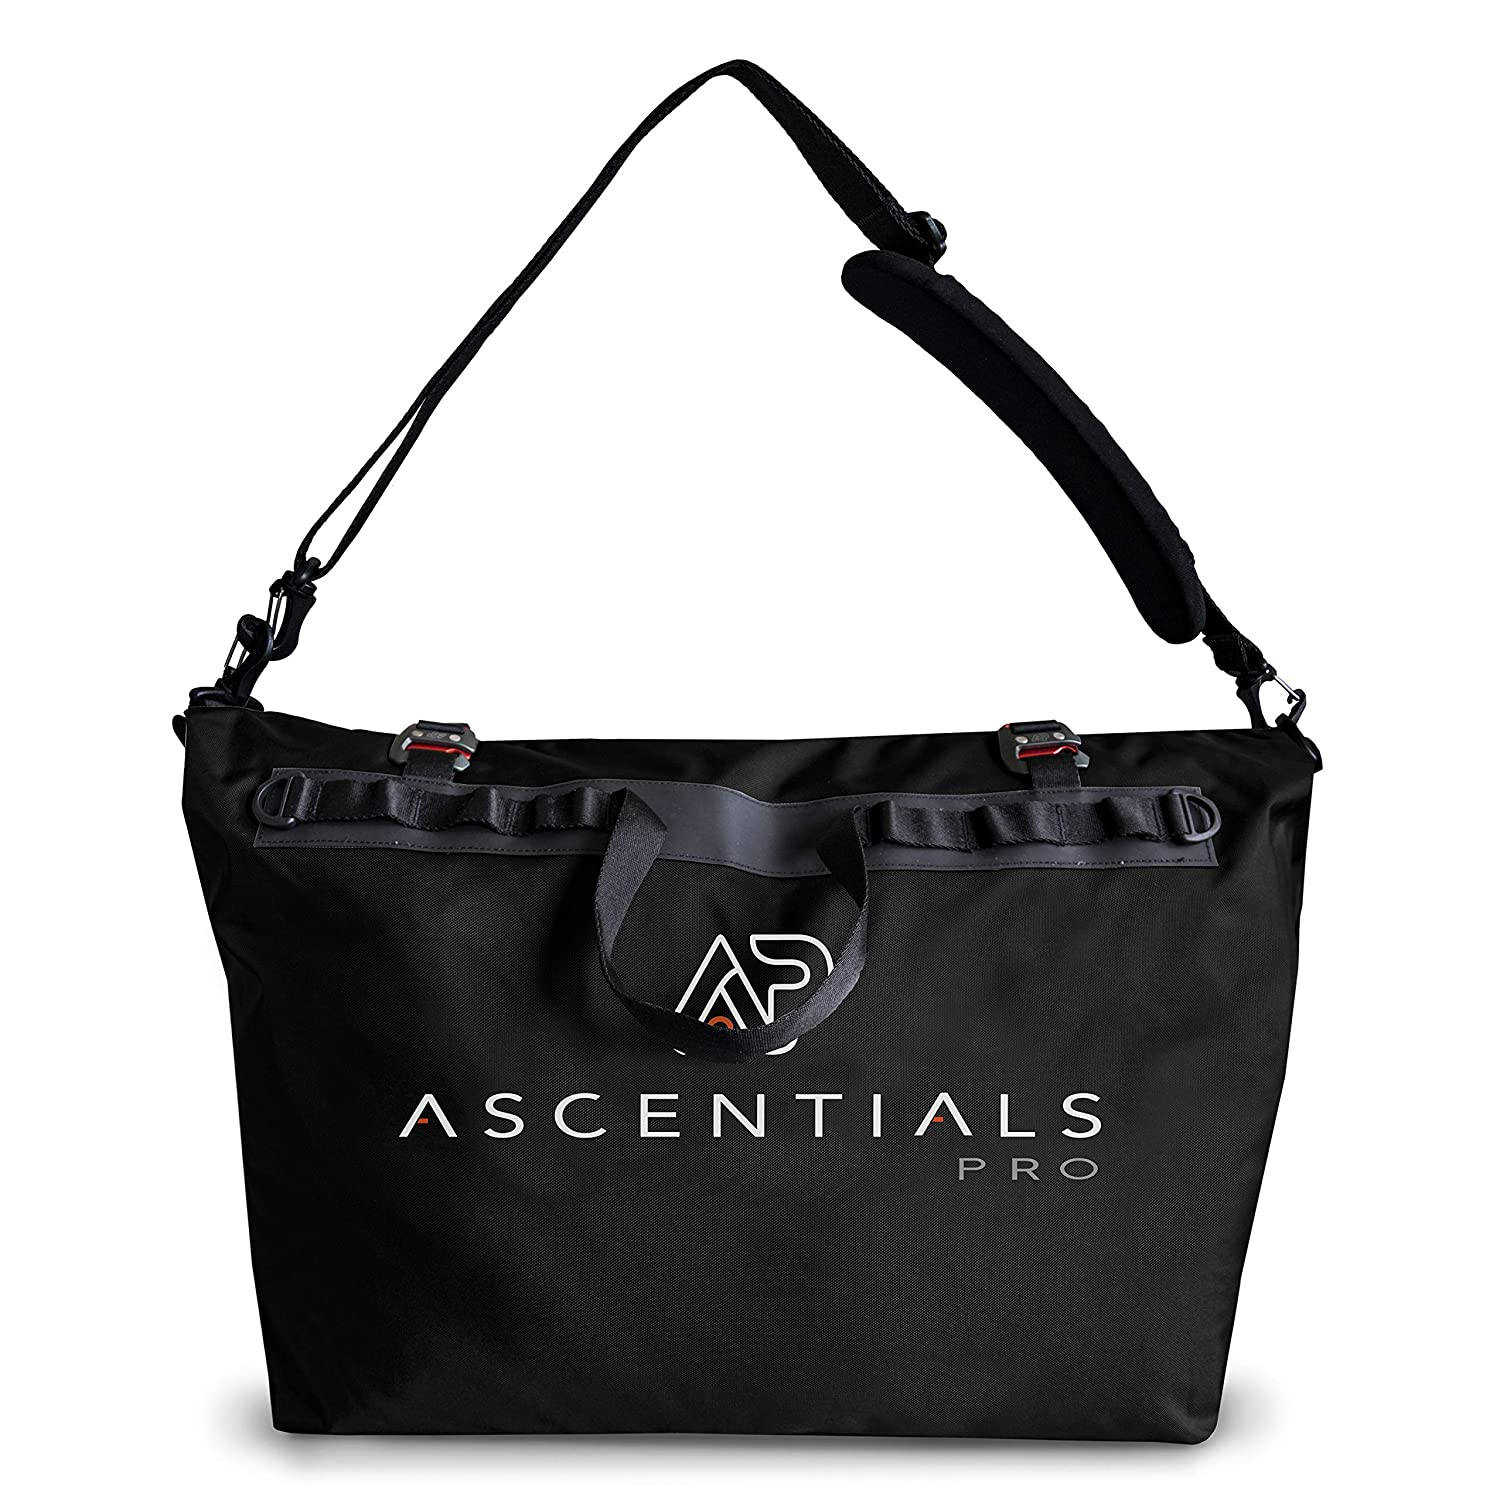 Ascentials Pro Hemisphere, Water Resistant, Durable Polyester, Oversized Travel Duffle, Gear Bag for Men